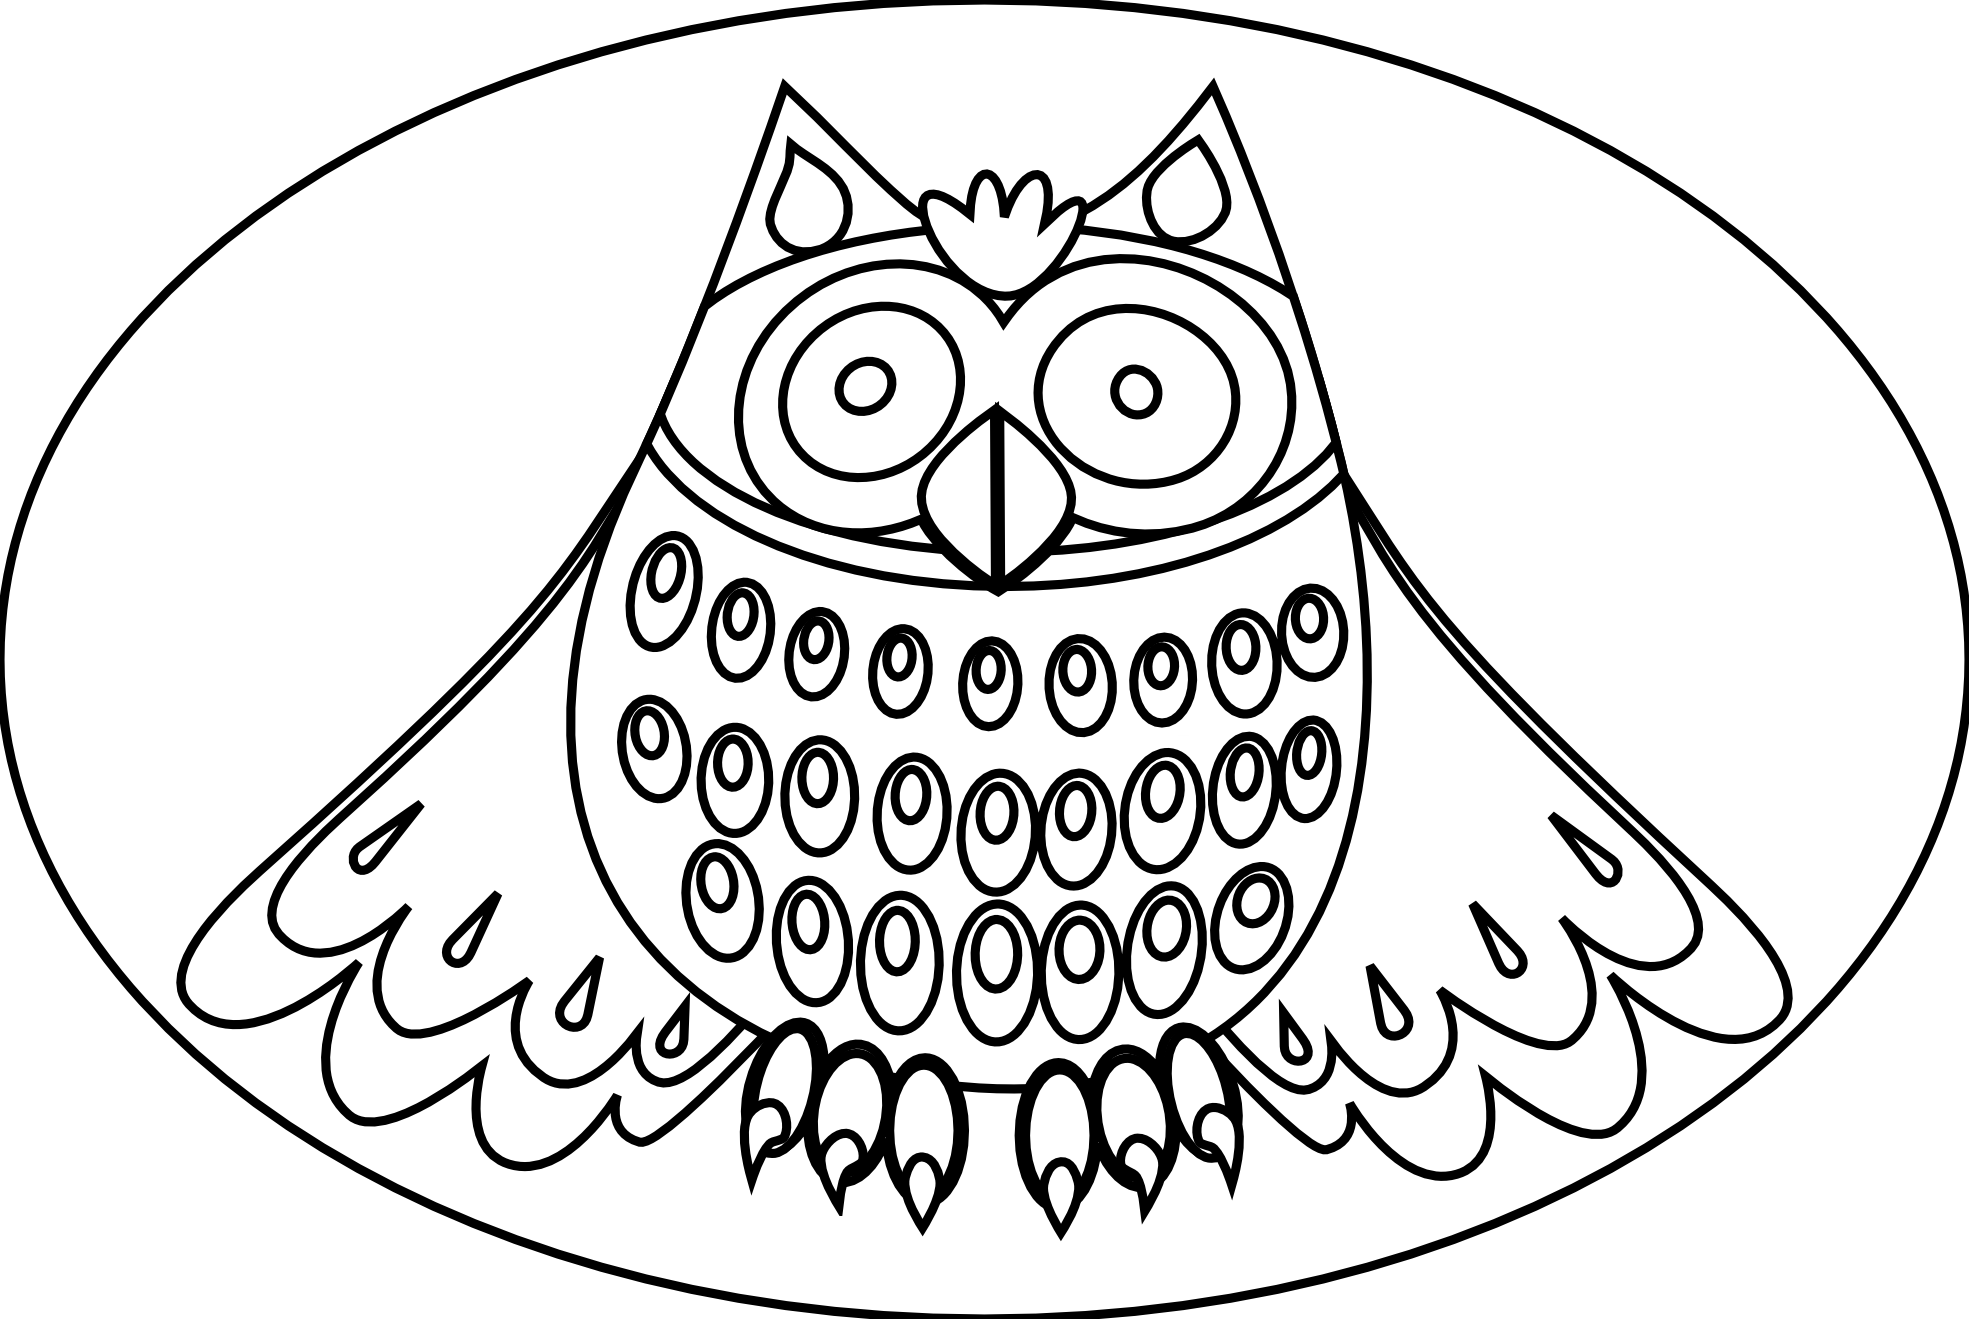 jpg black and white download Realistic owl at getdrawings. Drawing owls beginner